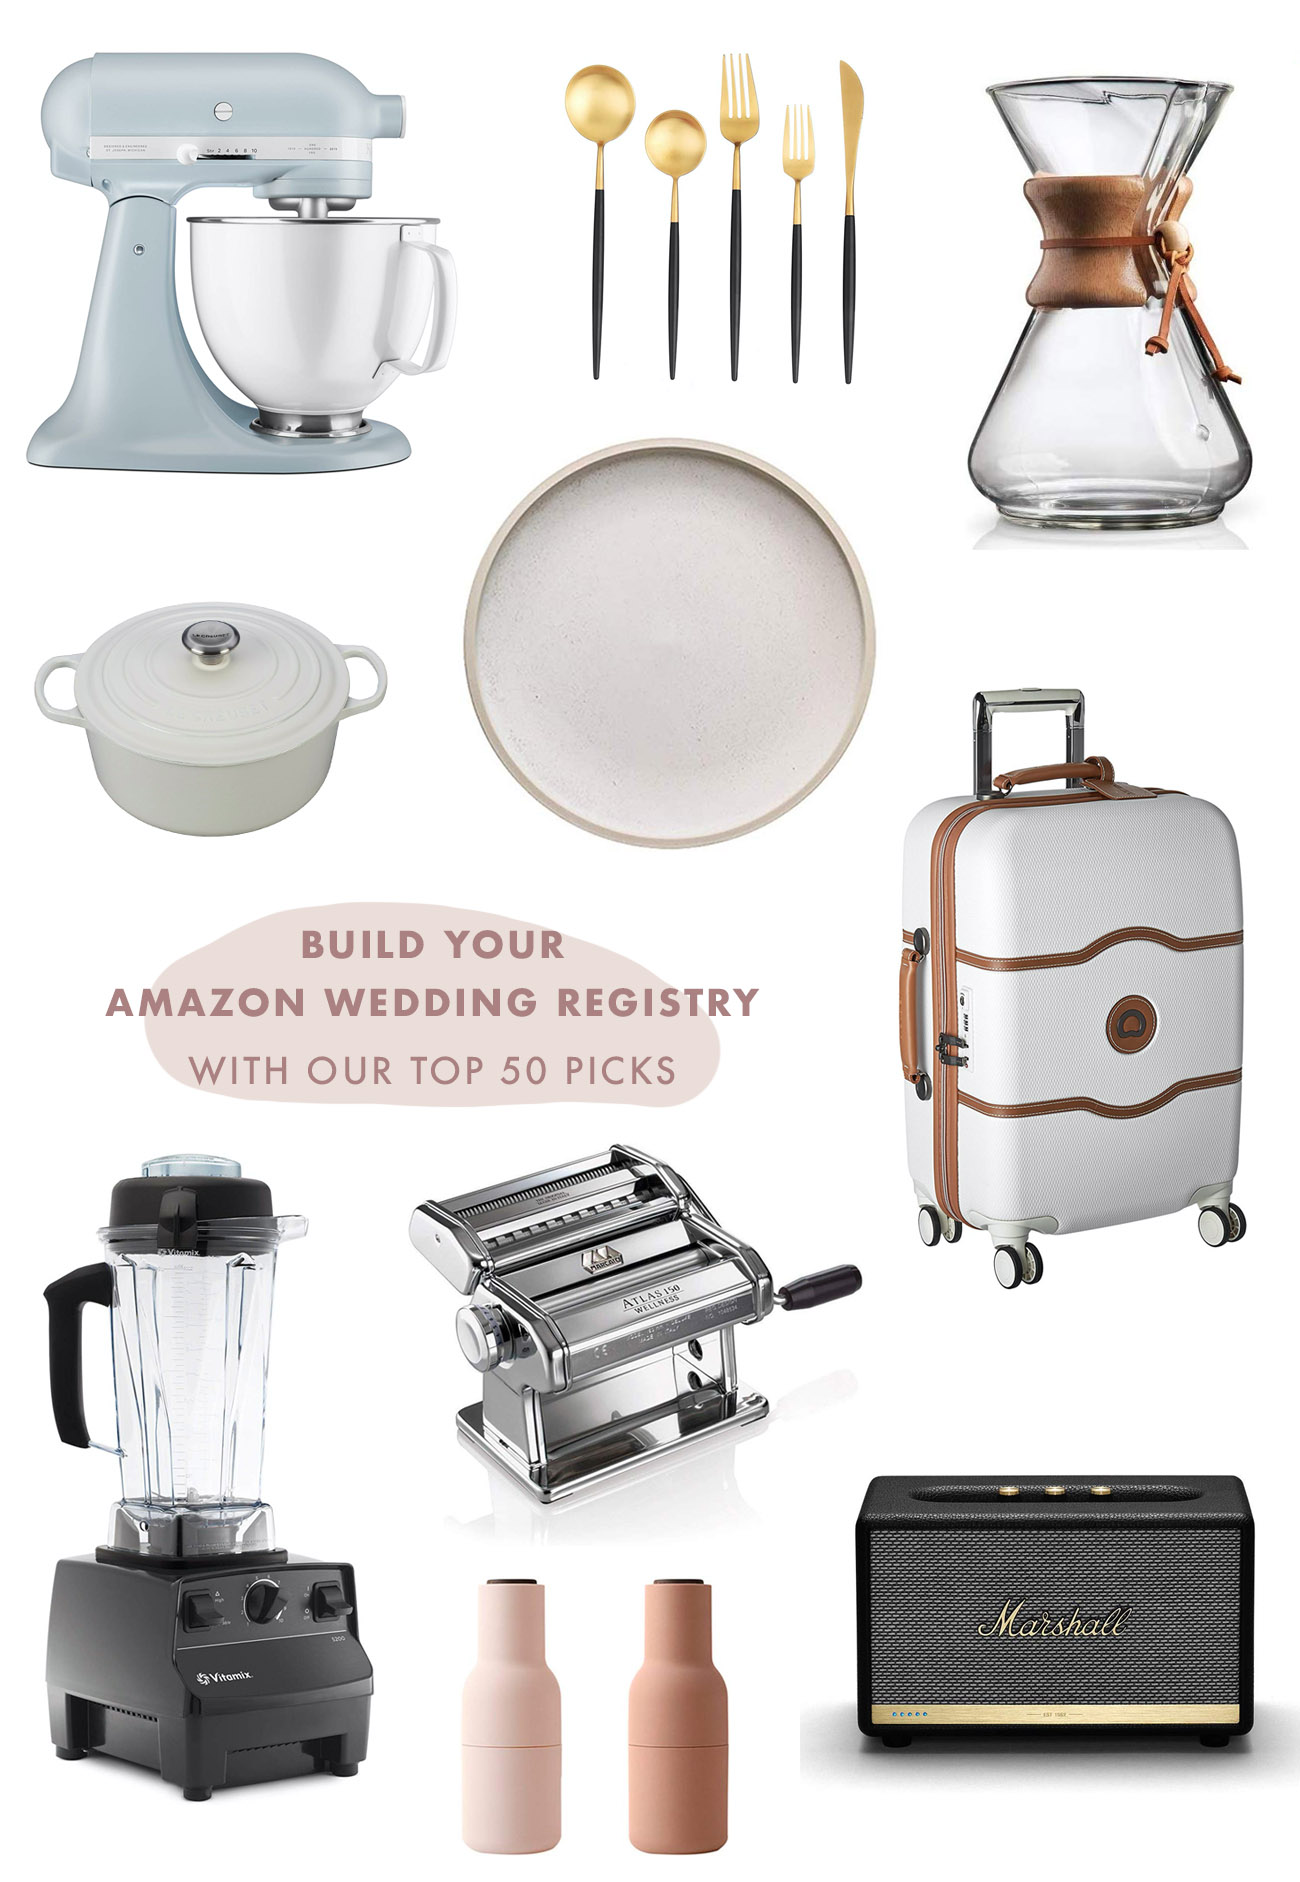 Our Favorite Amazon Registry picks